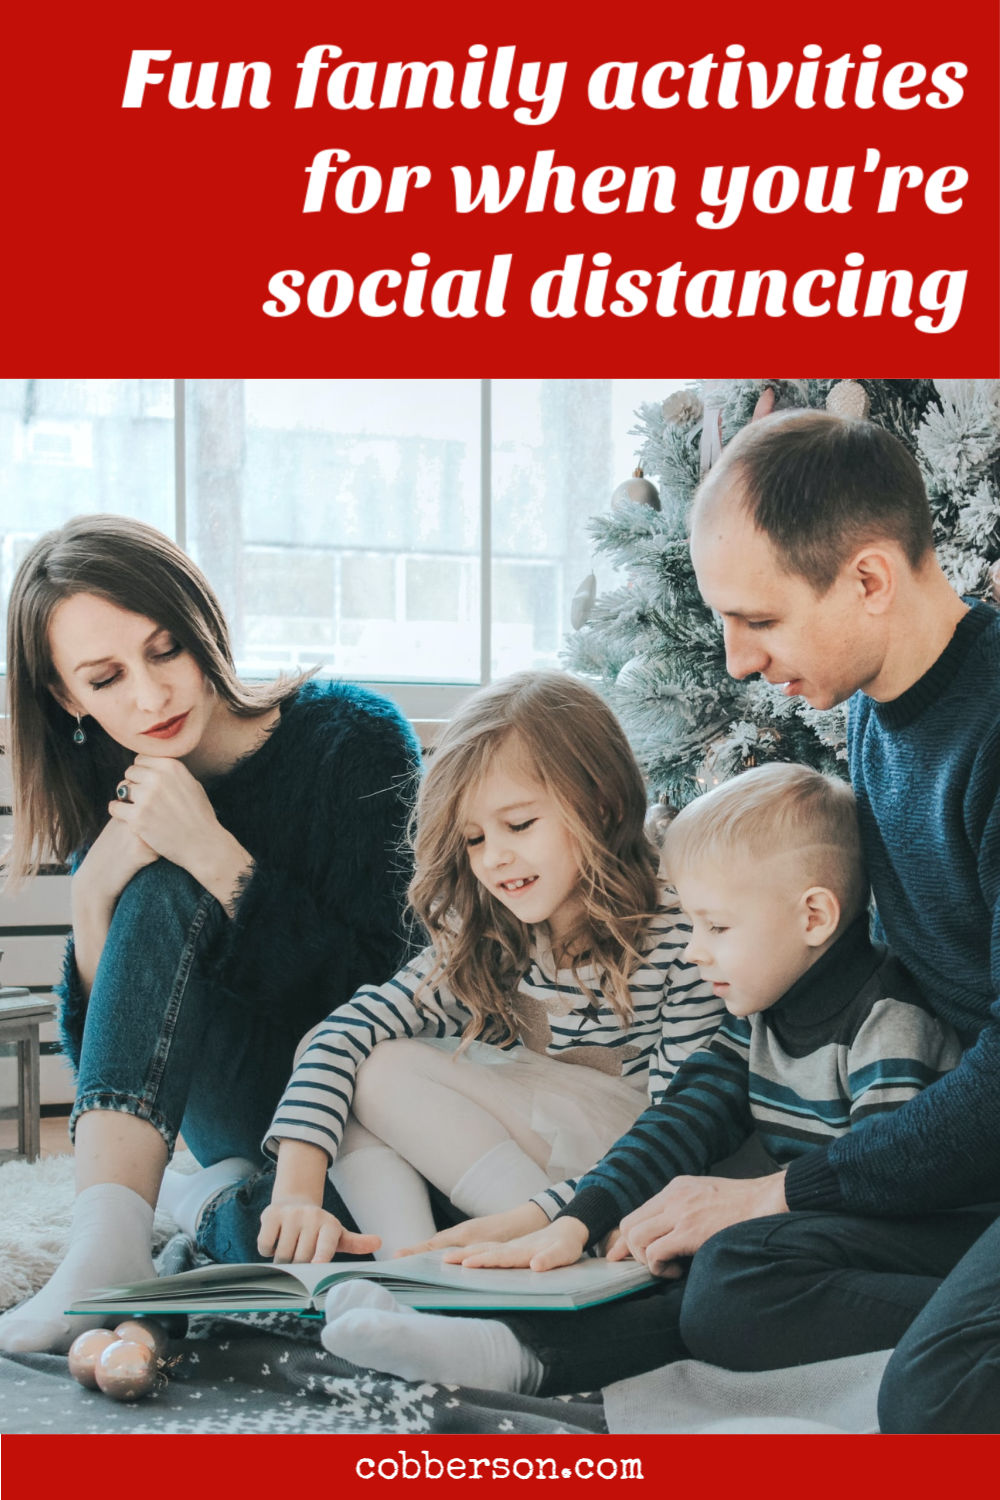 fun family activities for when you're social distancing